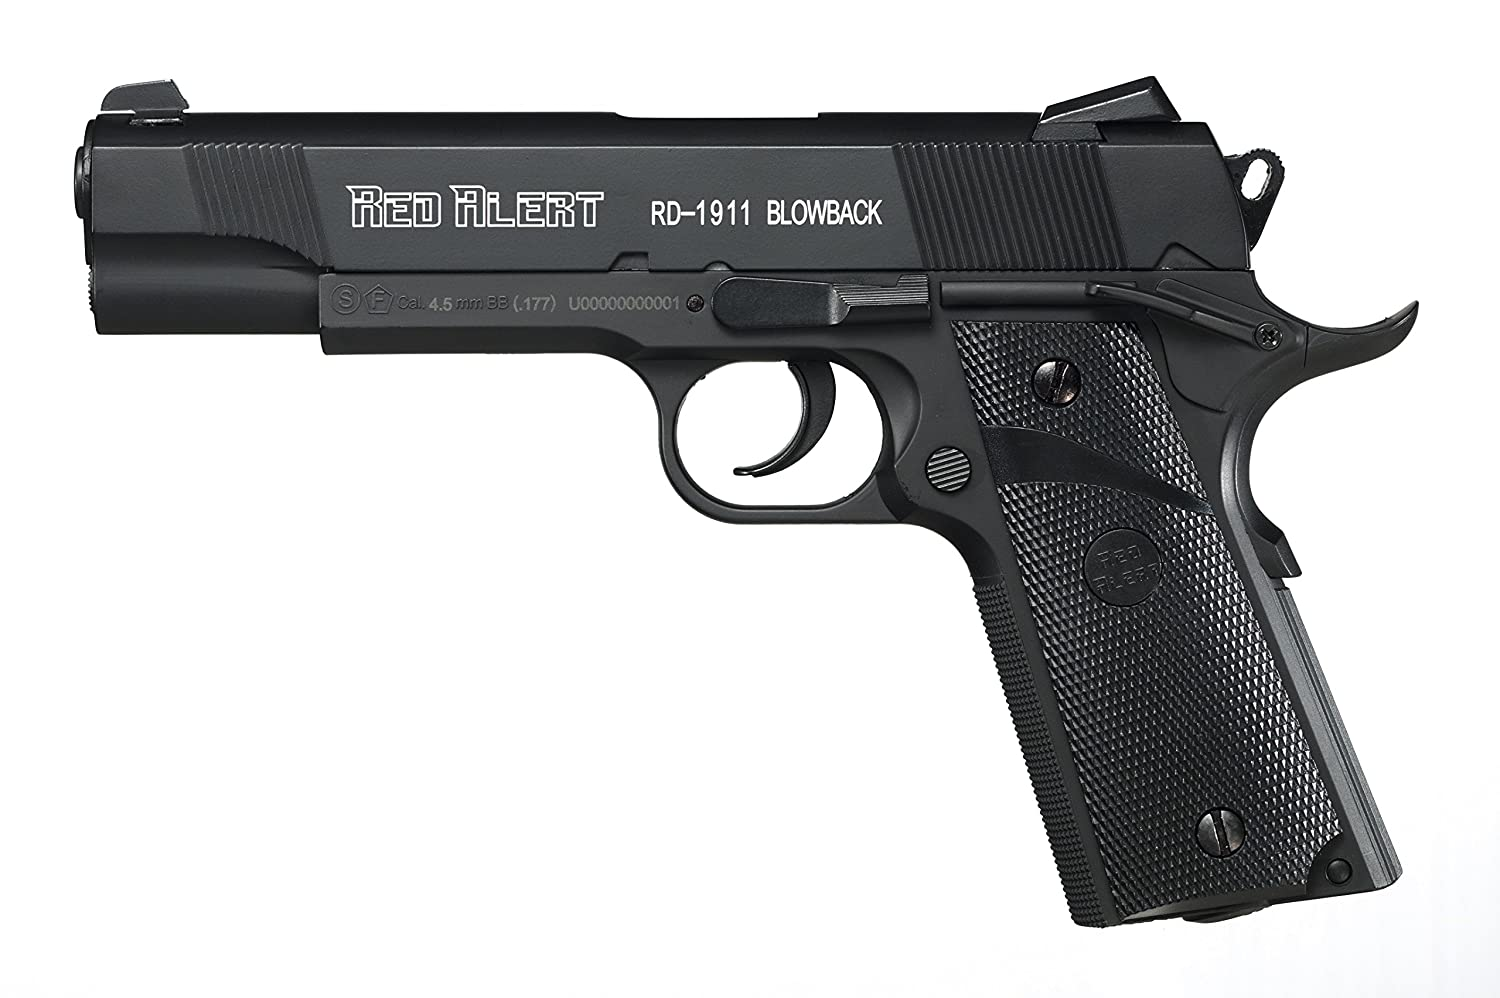 Gamo Outdoors 611164754 Red Alert RD-1911 CO2 Semi-Automatic Metal BB Air Pistol with Blowback, .177 Caliber прицел gamo 3 9х40 llwr ve39x40wrv w1pmv